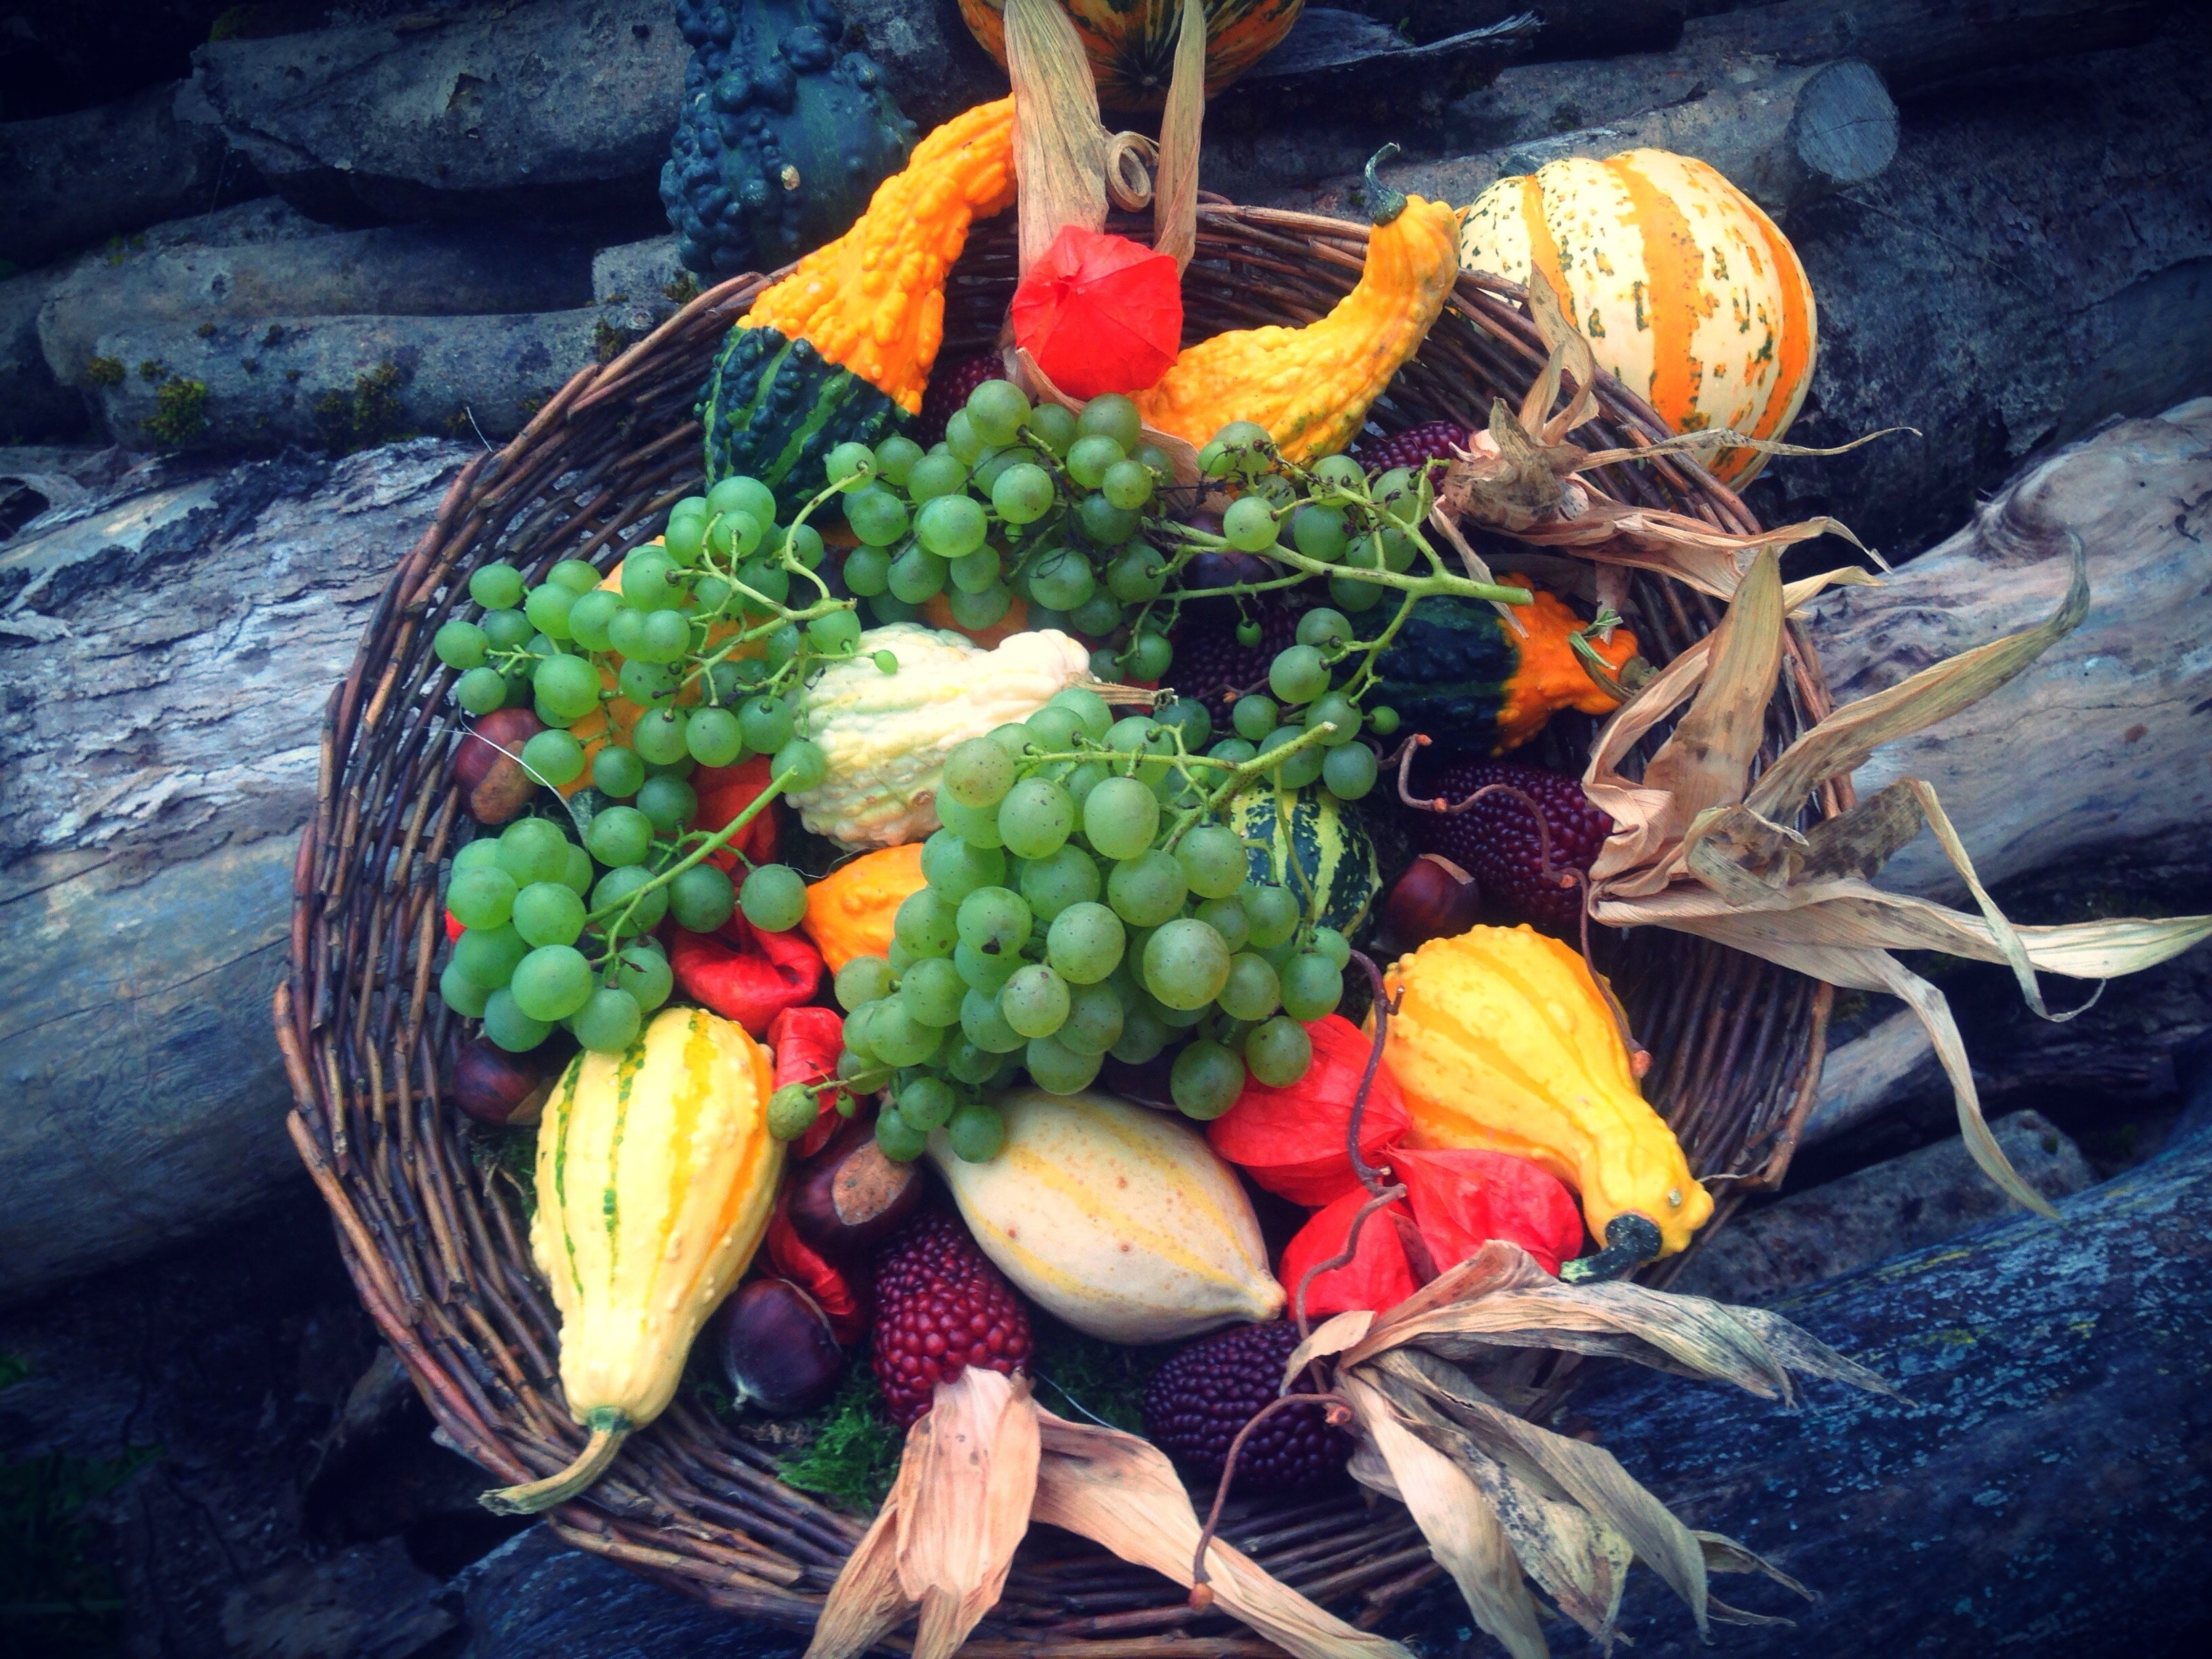 abundance-agriculture-autumn-decoration-265562